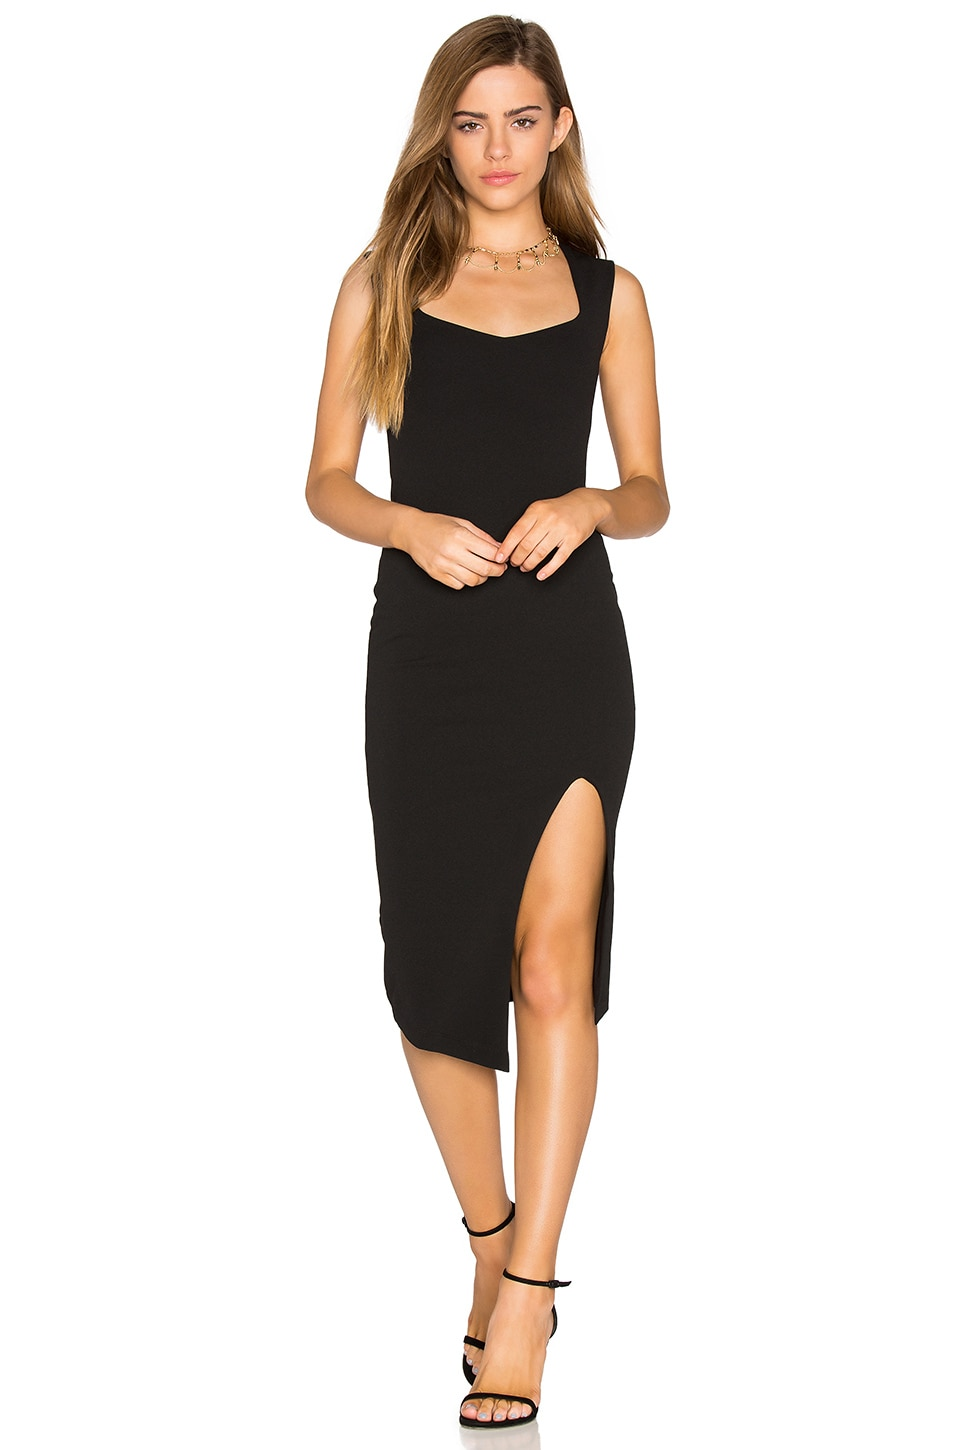 Nookie Captivate Square Neck Midi Dress in Black